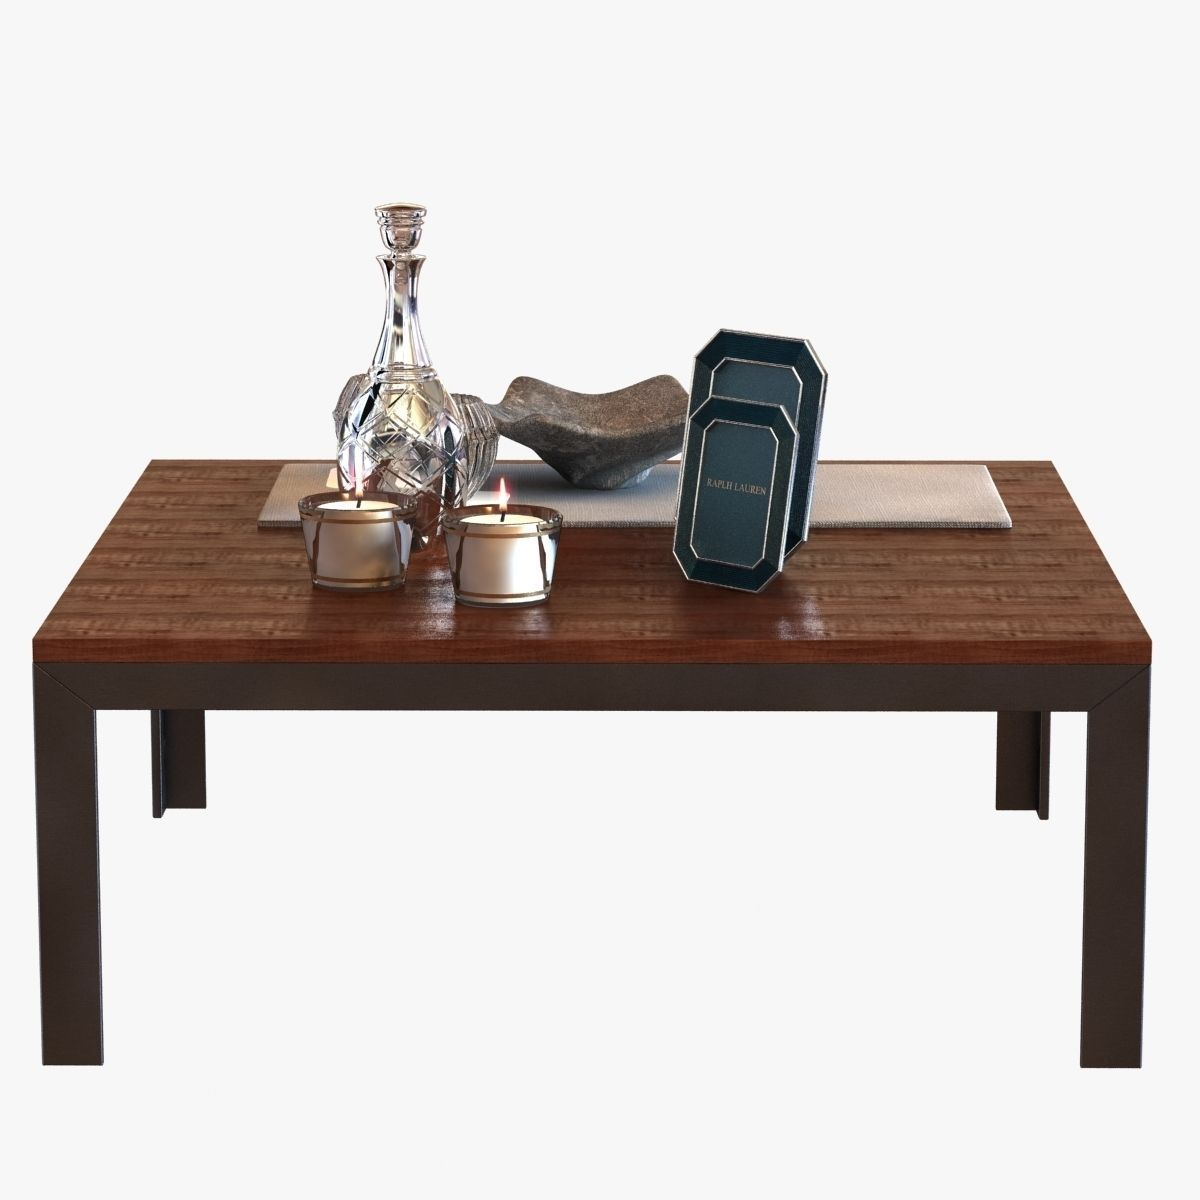 Coffee Table With Decor 3d Model Max Obj 3ds Fbx